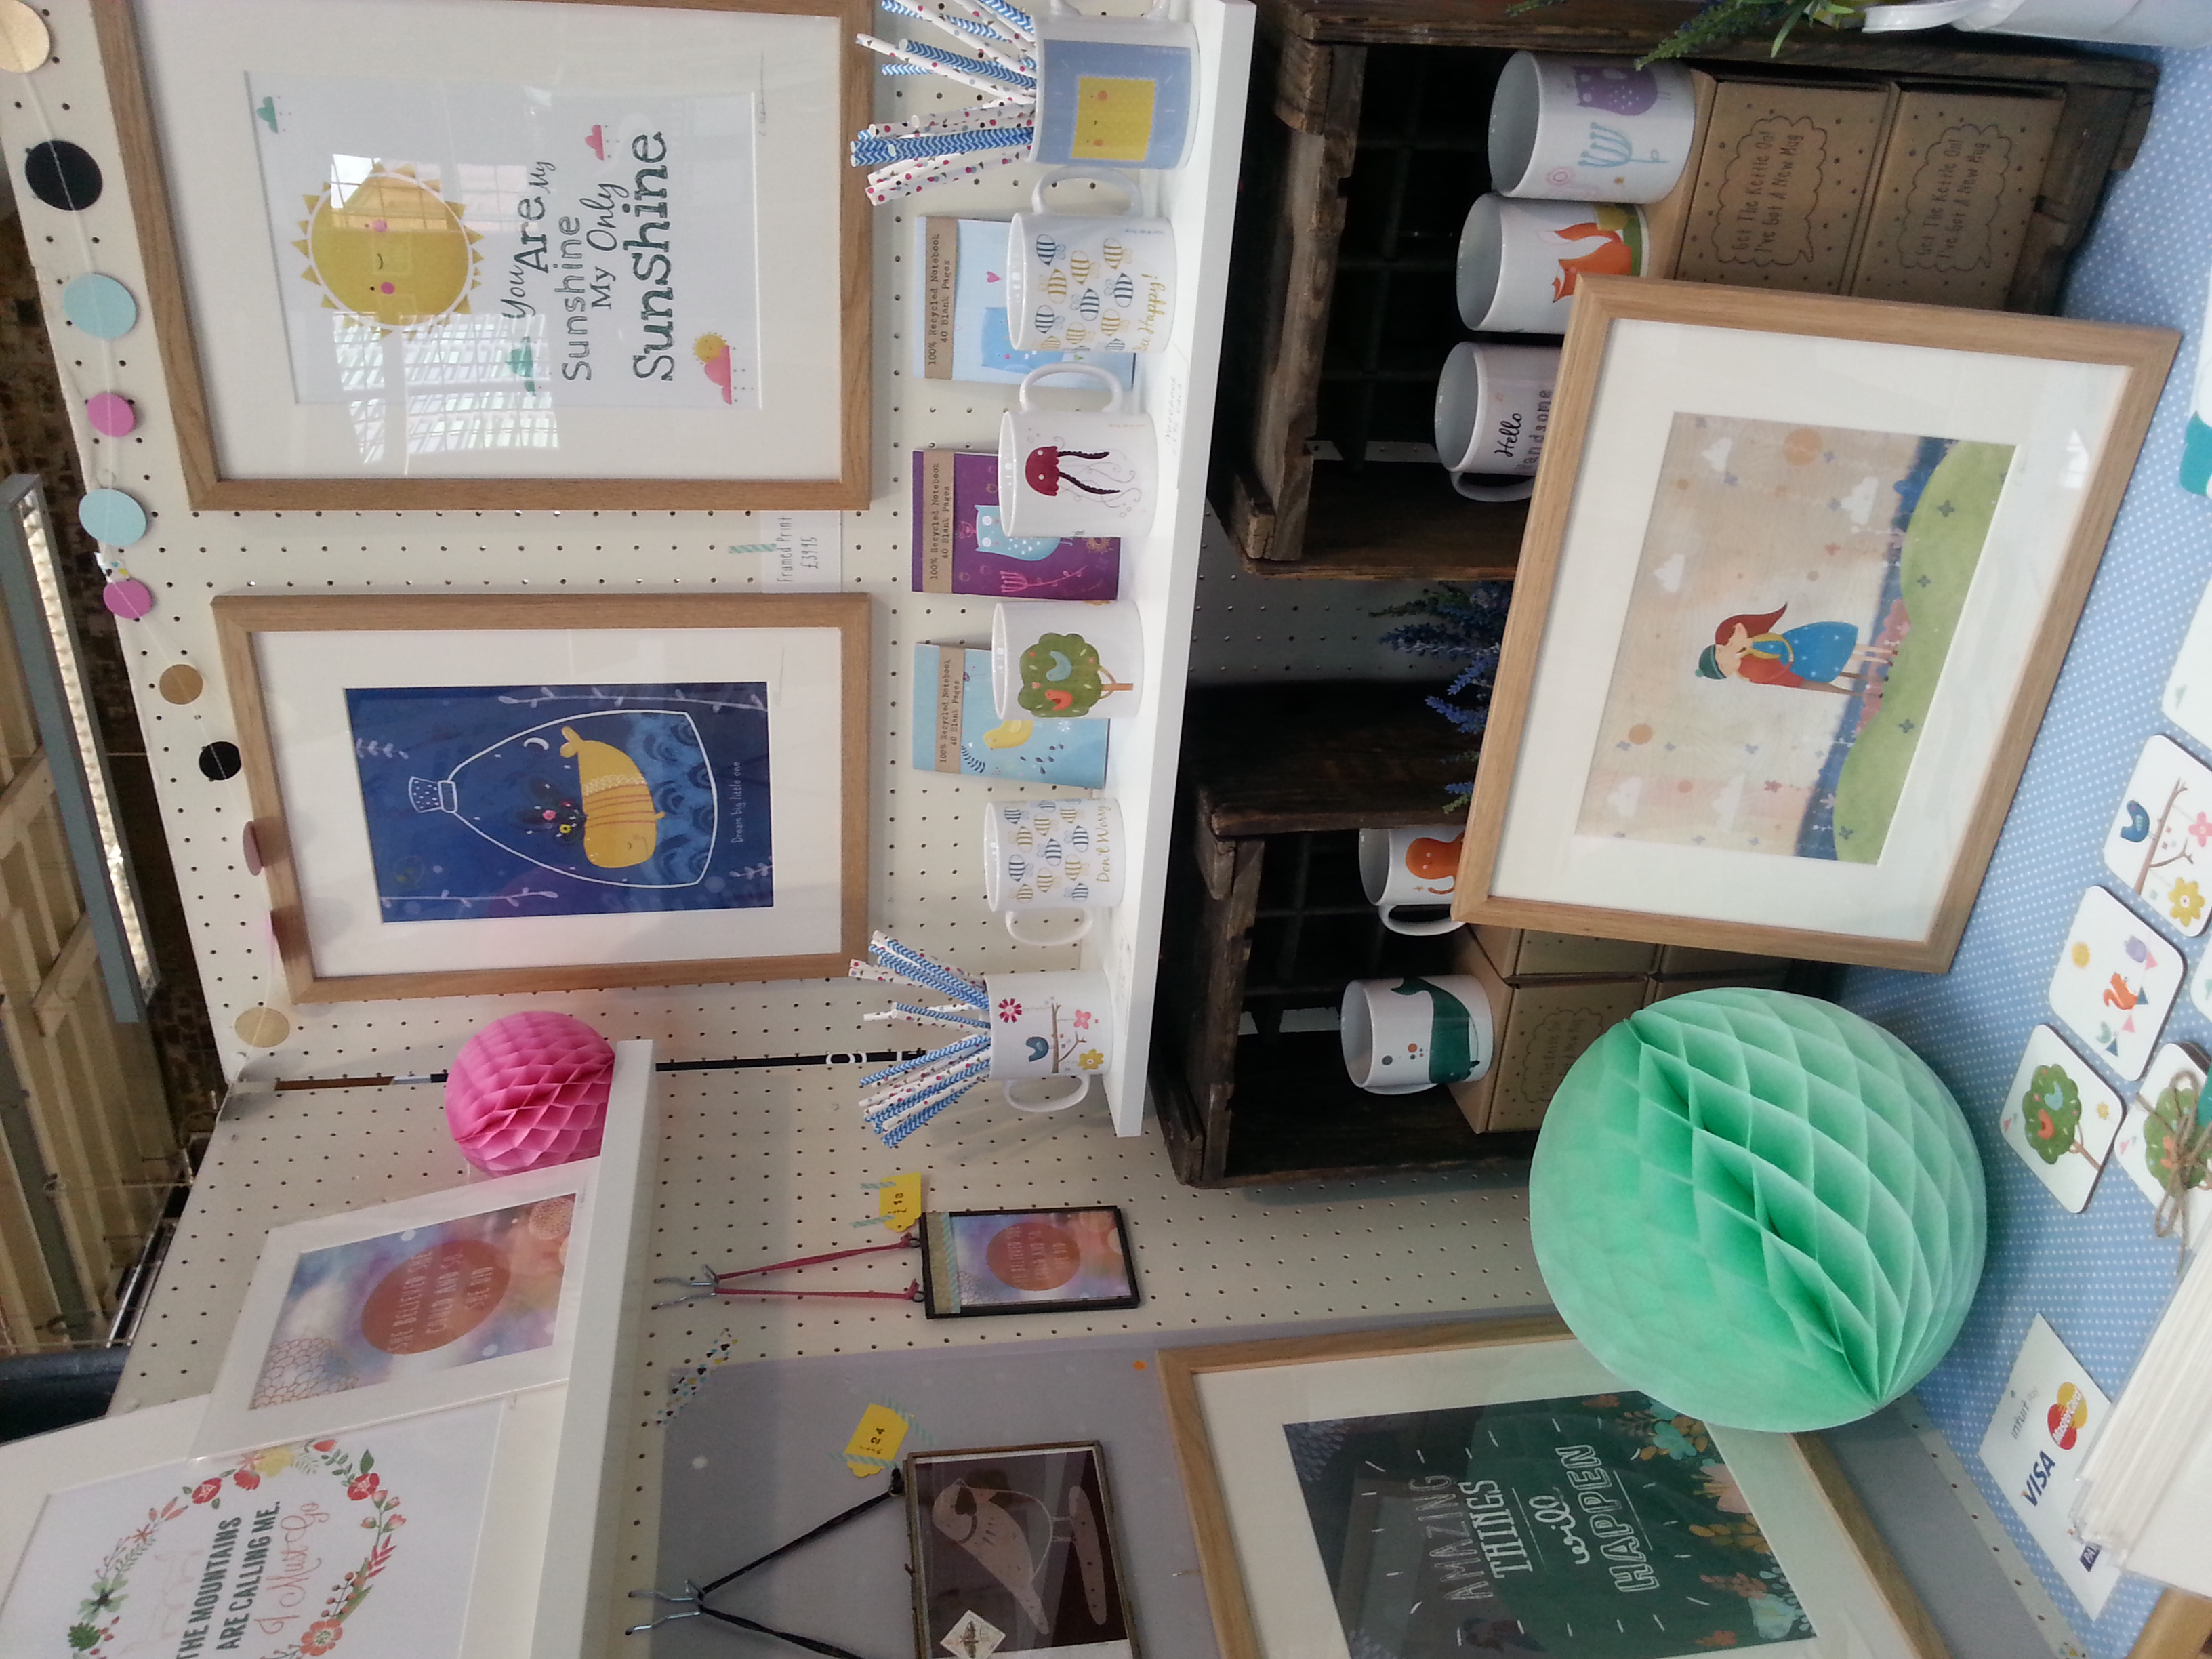 July - A Glimpse of my stand at the Fabulous Places Summer Market.